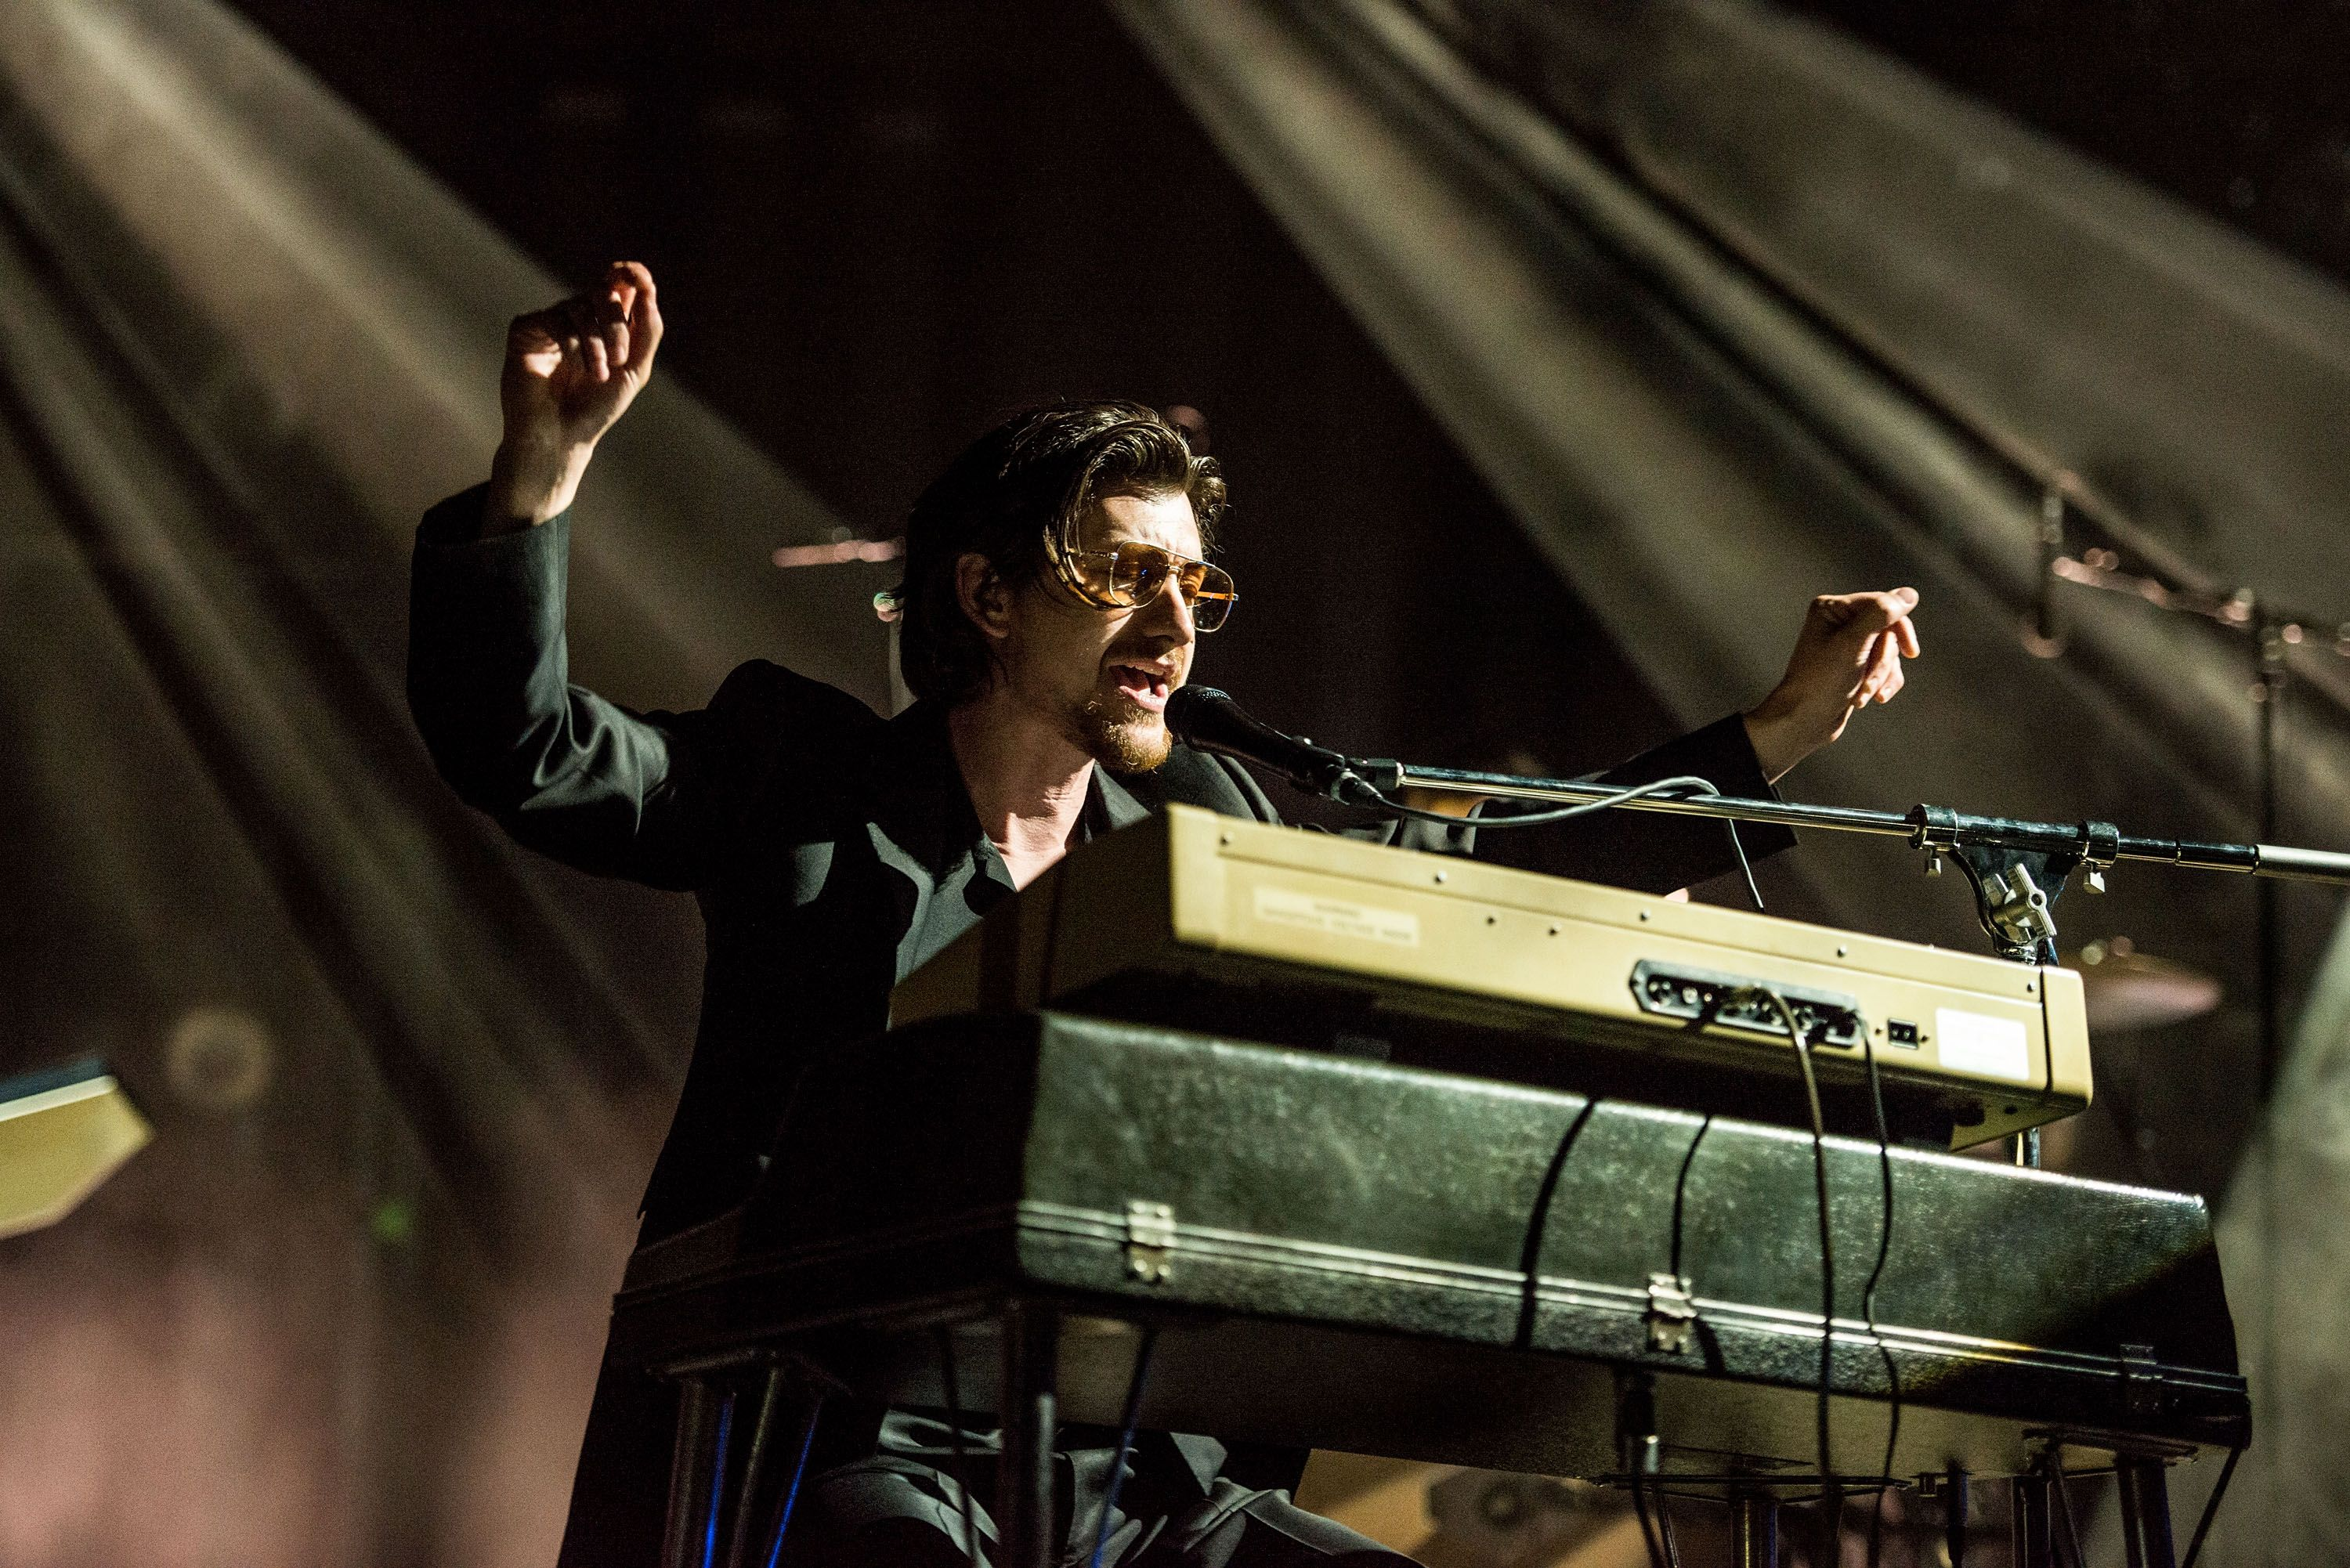 The New Arctic Monkeys Album Is As Confusing As Alex Turner's Beard